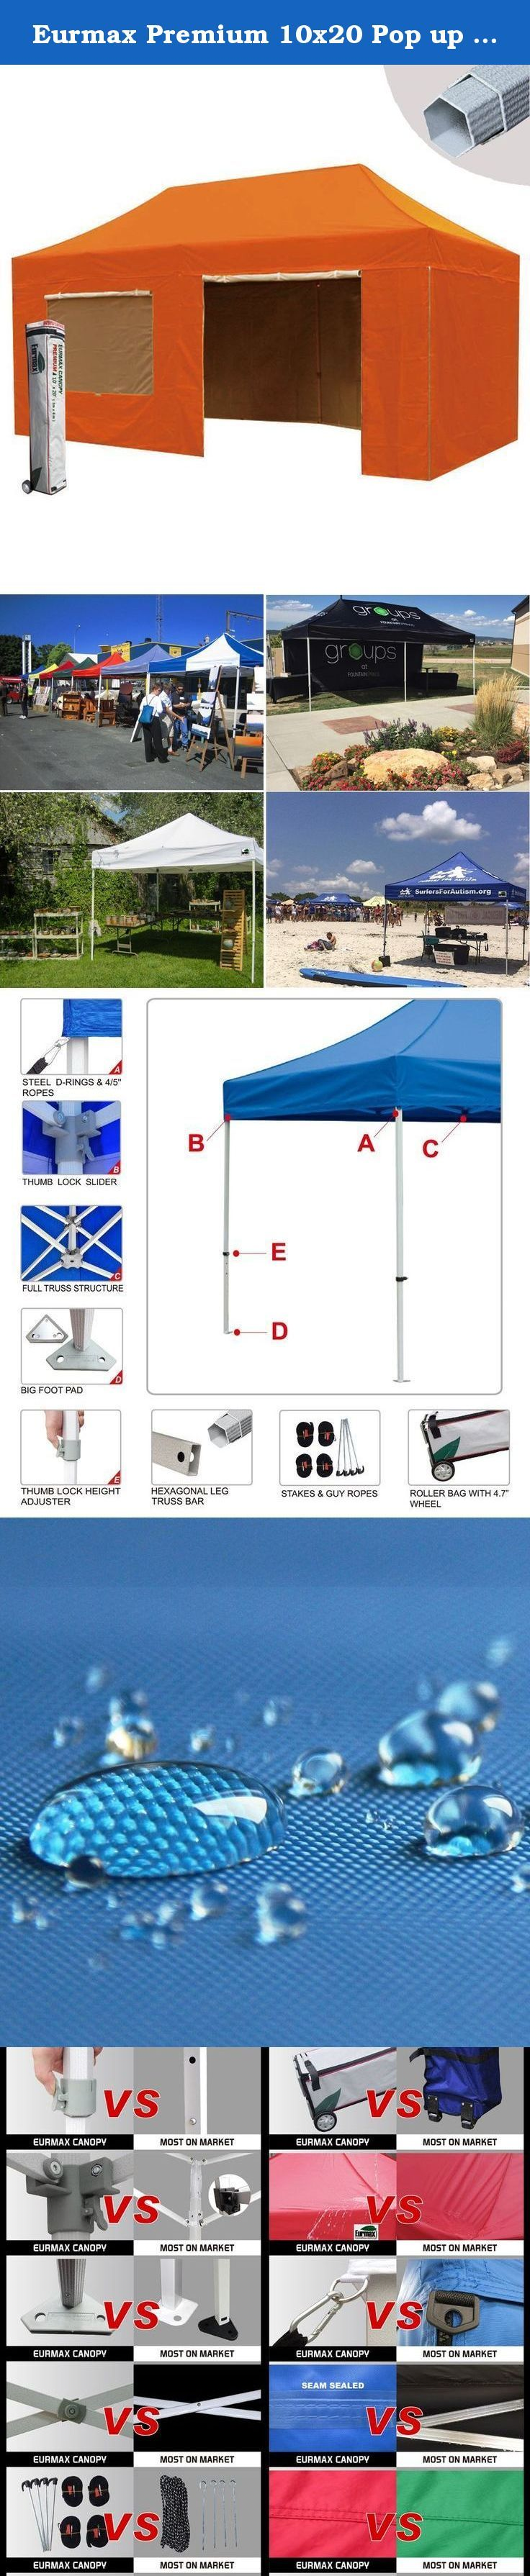 """Eurmax Premium 10x20 Pop up Canopy Tent Instant Shelter with 4 Zipper Sidewalls and Roller Bag (Orange). Eurmax PREMIUM easy pop up canopy is our mid commercial level Pop up canopy with 1.6"""" hexagonal aluminum leg. The 10x20 pop up canopy can be quickly erected by two people without any tools. the canopy is light in weight and high in quality. we have 3 sizes available and 19 colors for your choice. this portable canopy comes with a super wheeled bag with two 4.7"""" wheels which can handle..."""